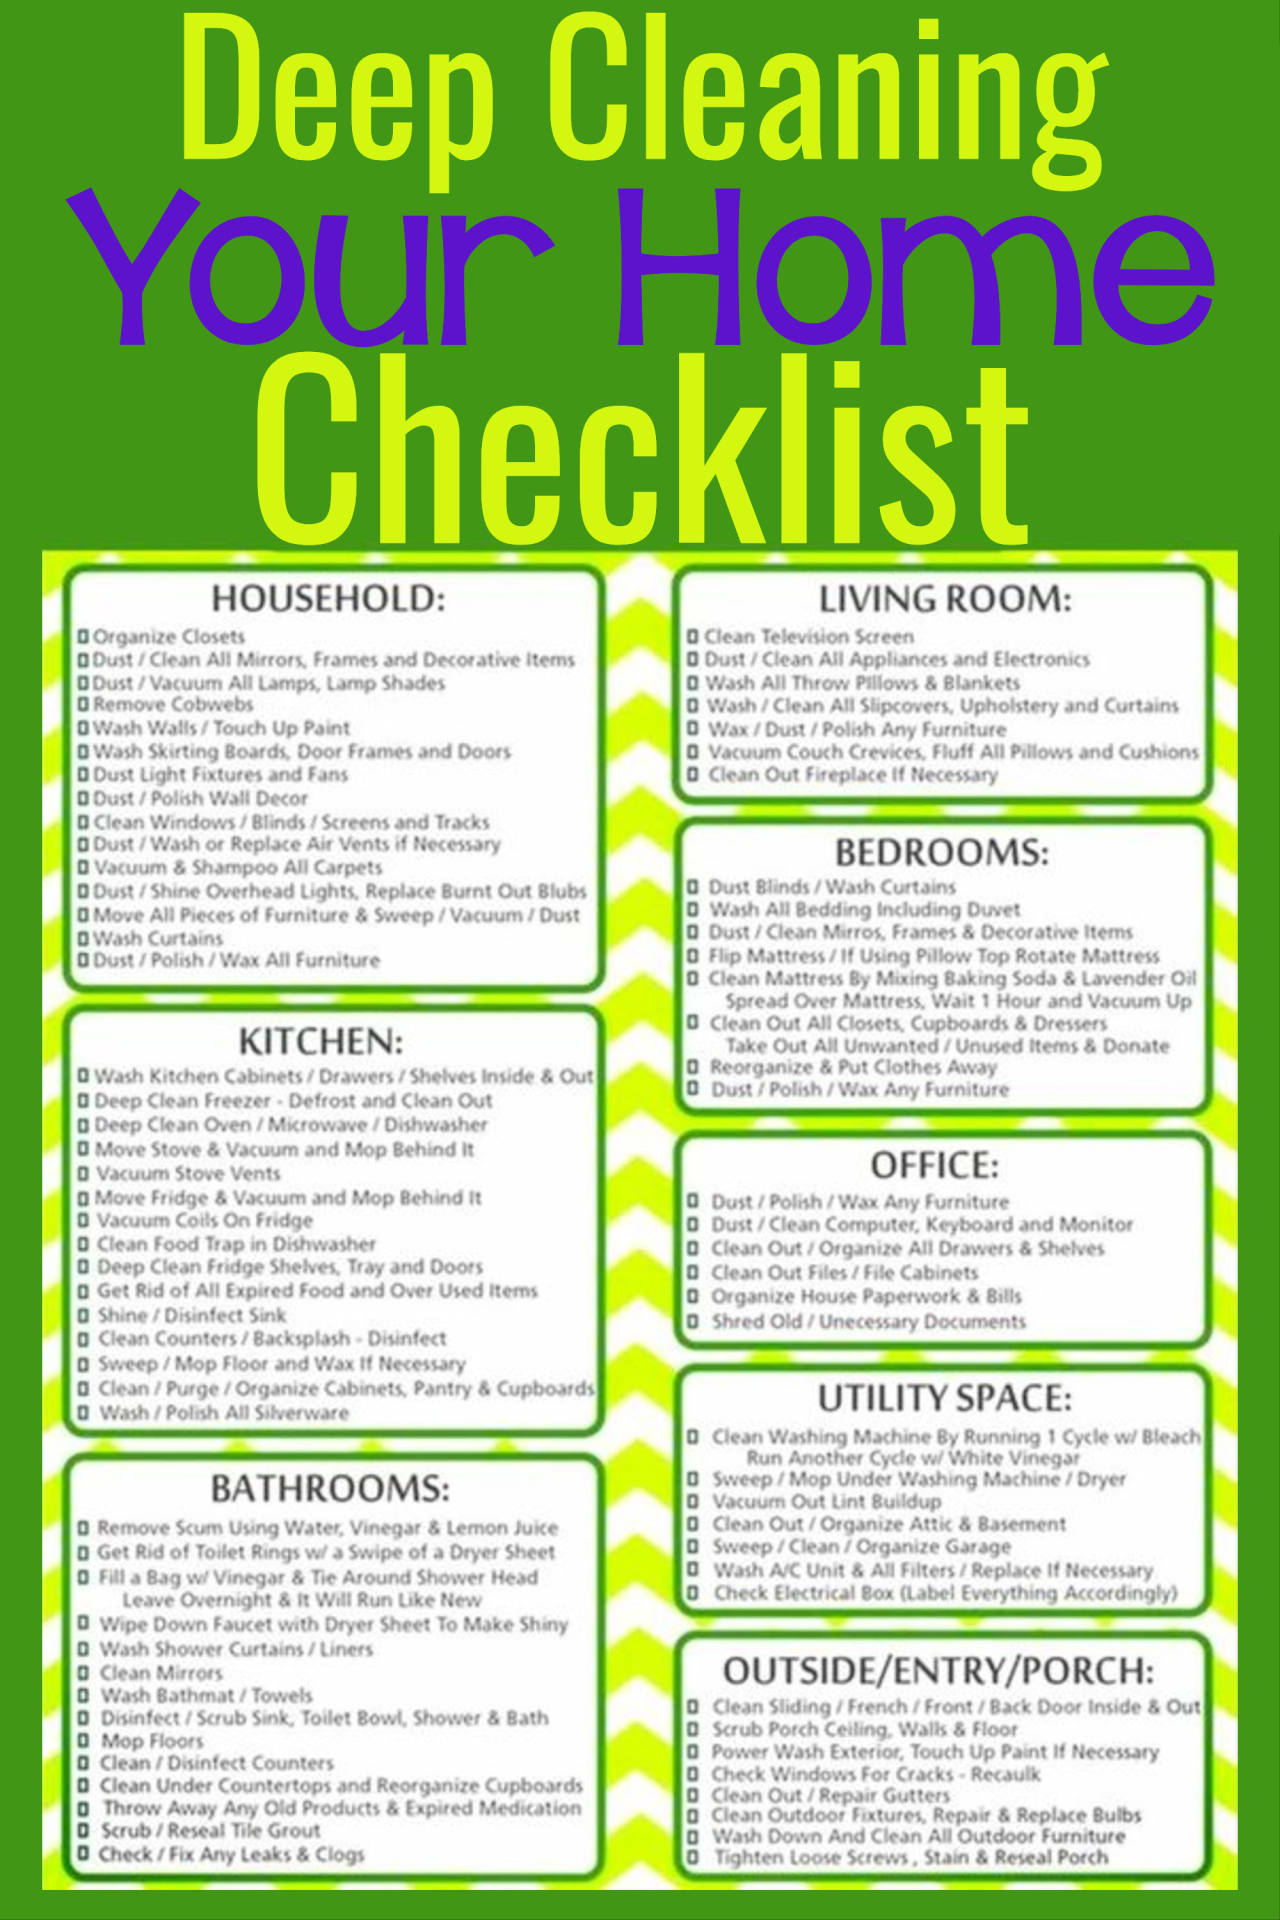 Room By Room Deep Cleaning Checklist To Help You Spring Clean Your Home Grandma S Things